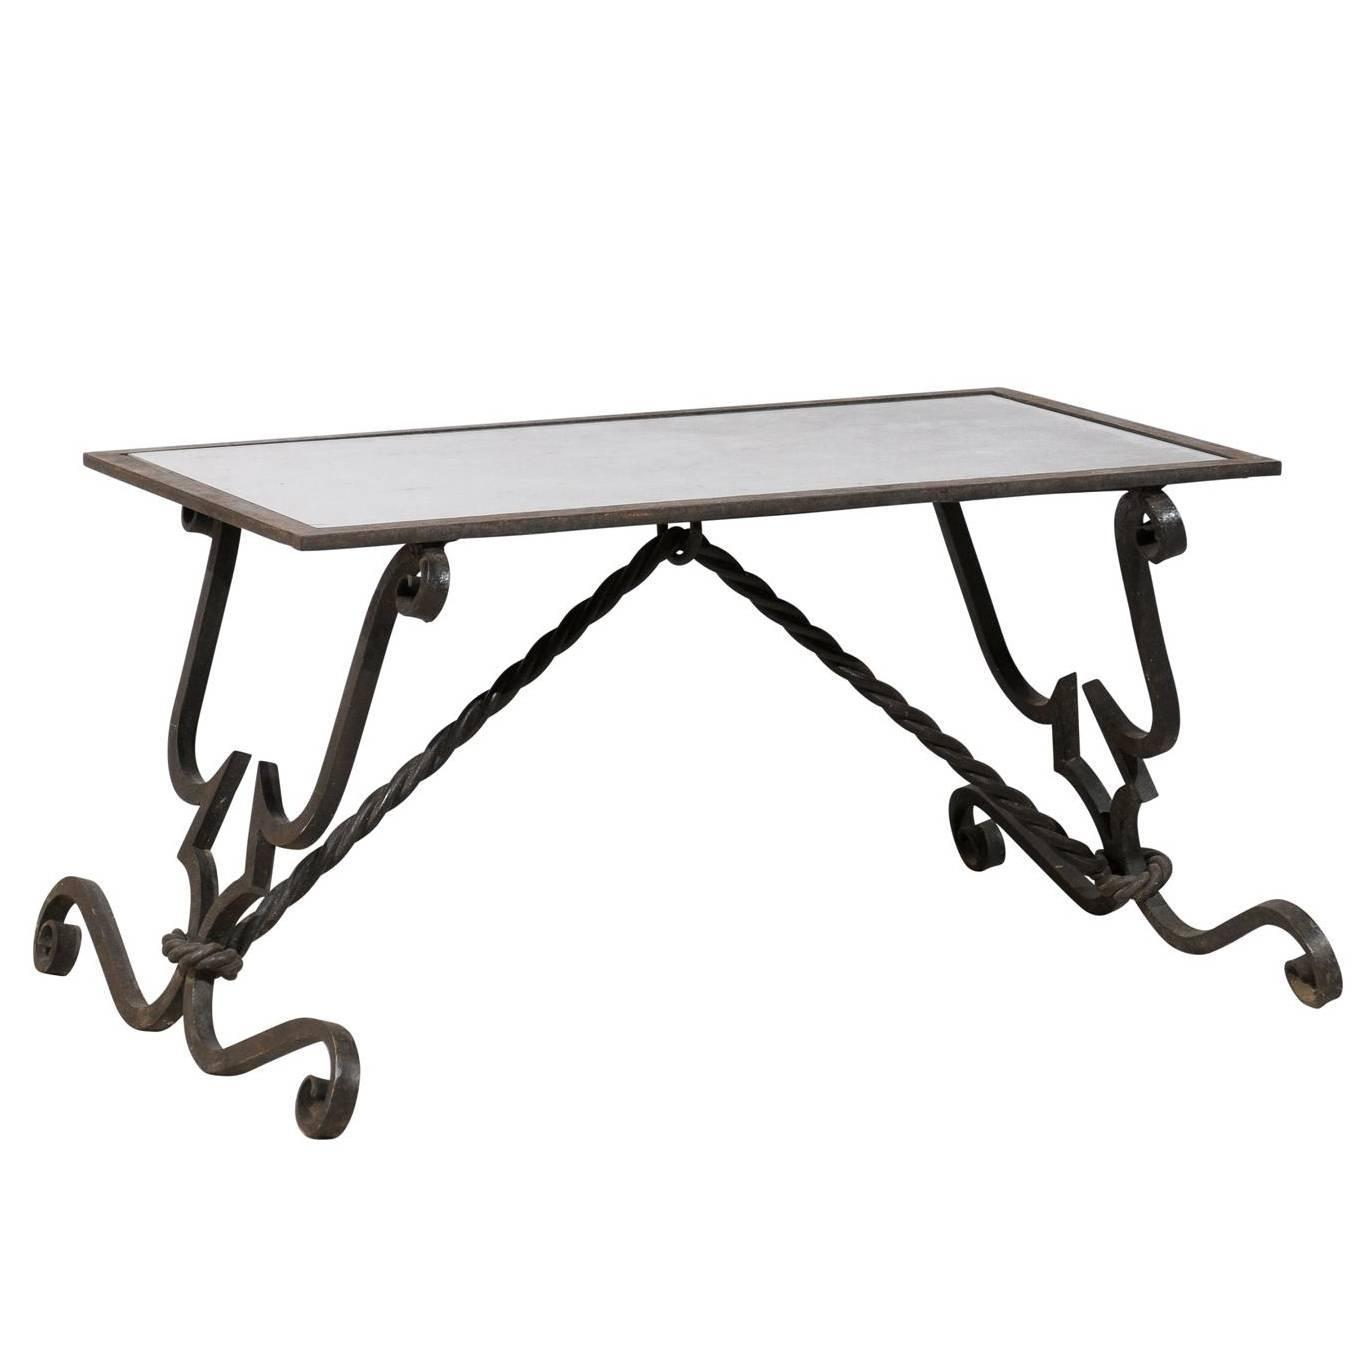 French vintage wrought iron base coffee table for sale at 1stdibs Wrought iron coffee table bases